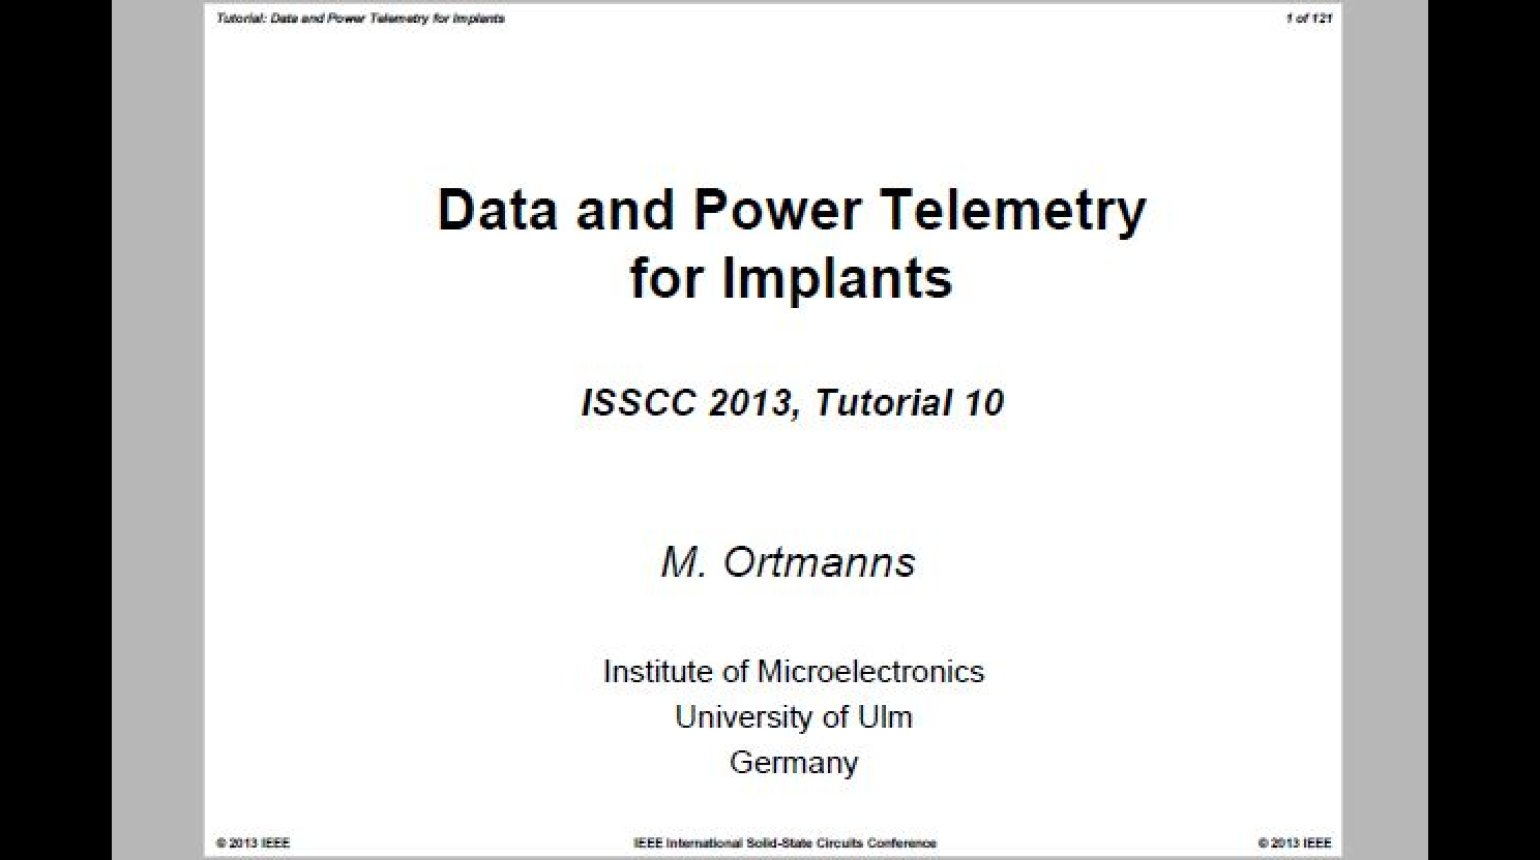 Data and Power Telemetry for Implants Video